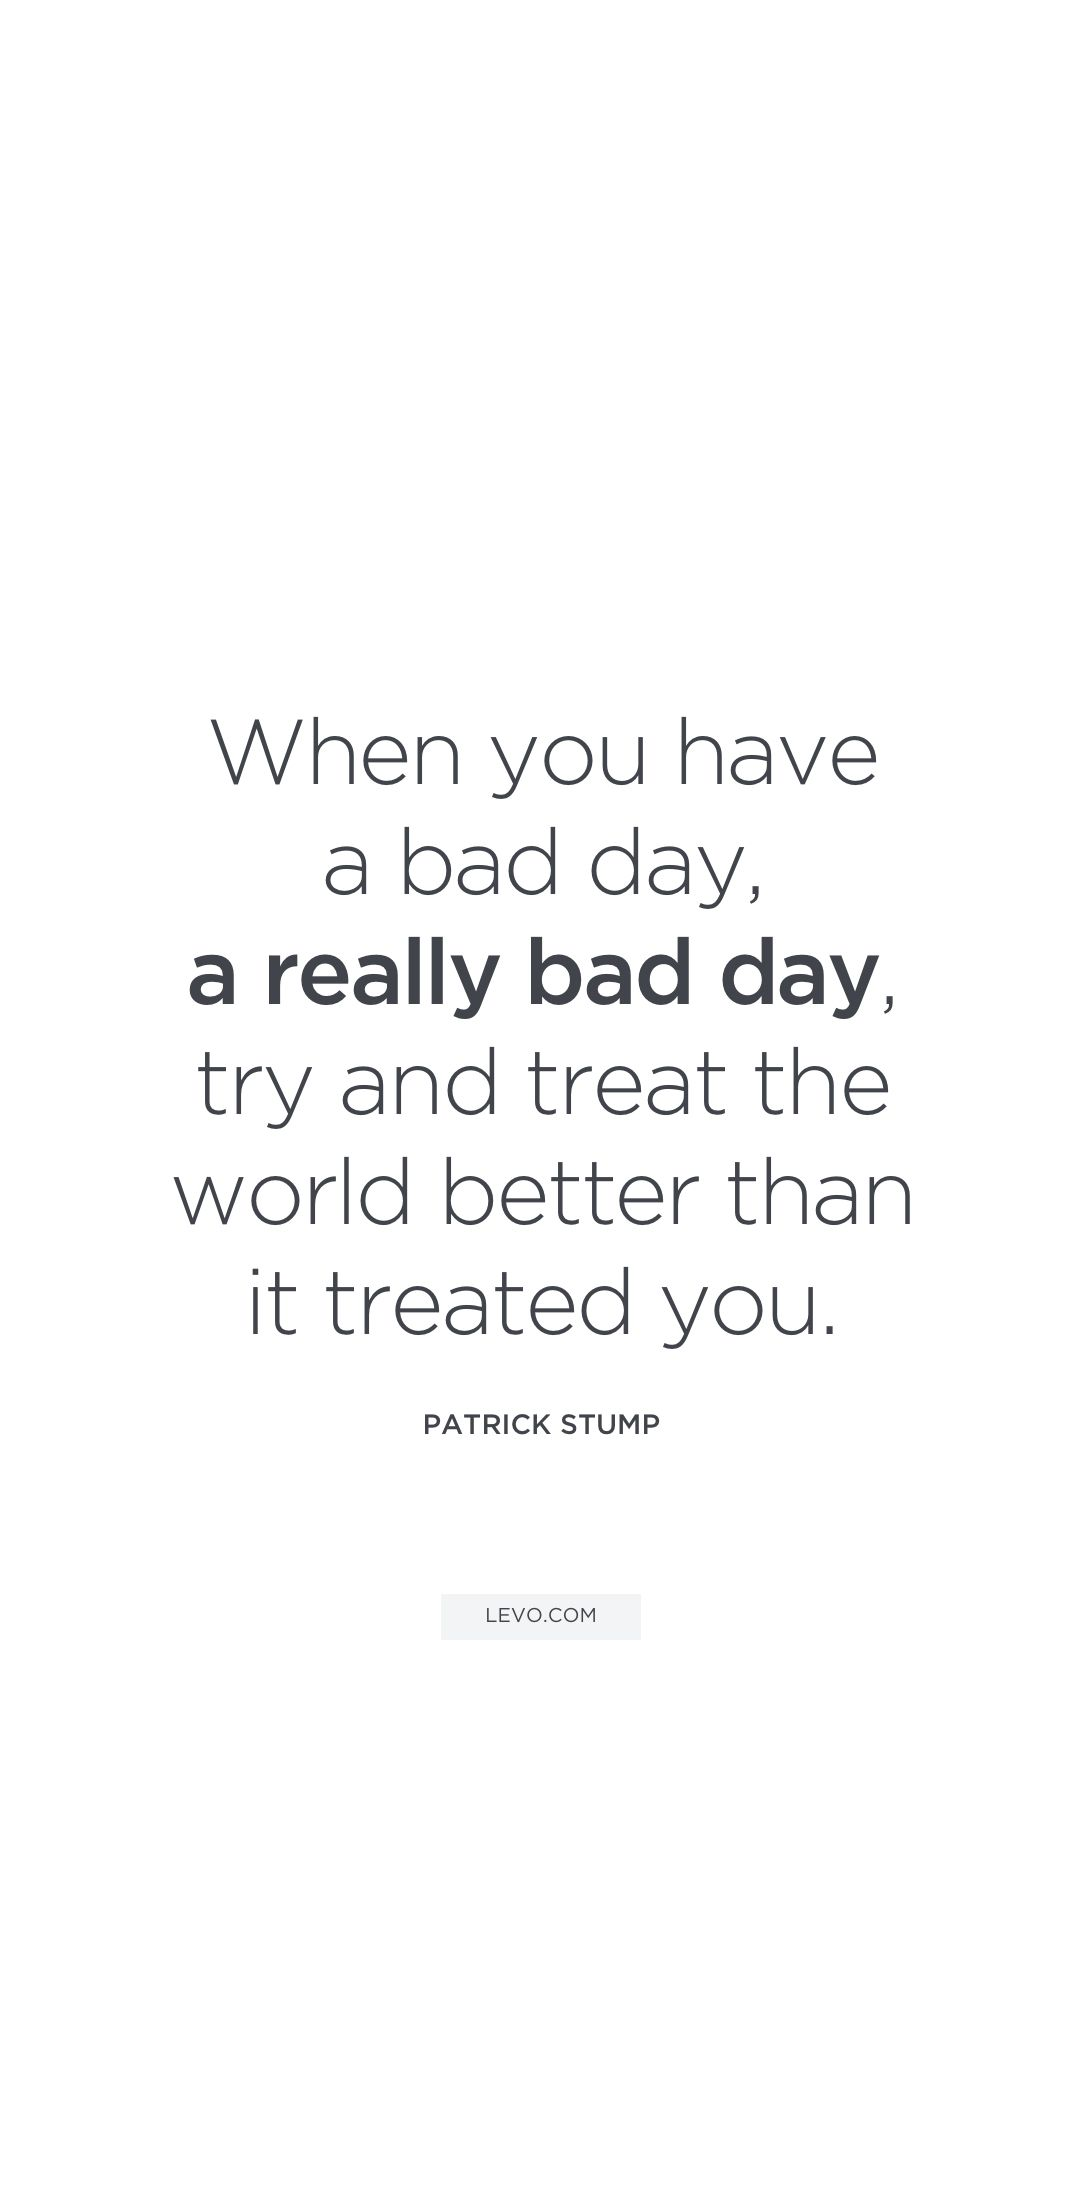 Uplifting Quotes To Inspire Your Day Patrick Stump Bad Day Quotes Uplifting Quotes Life Quotes